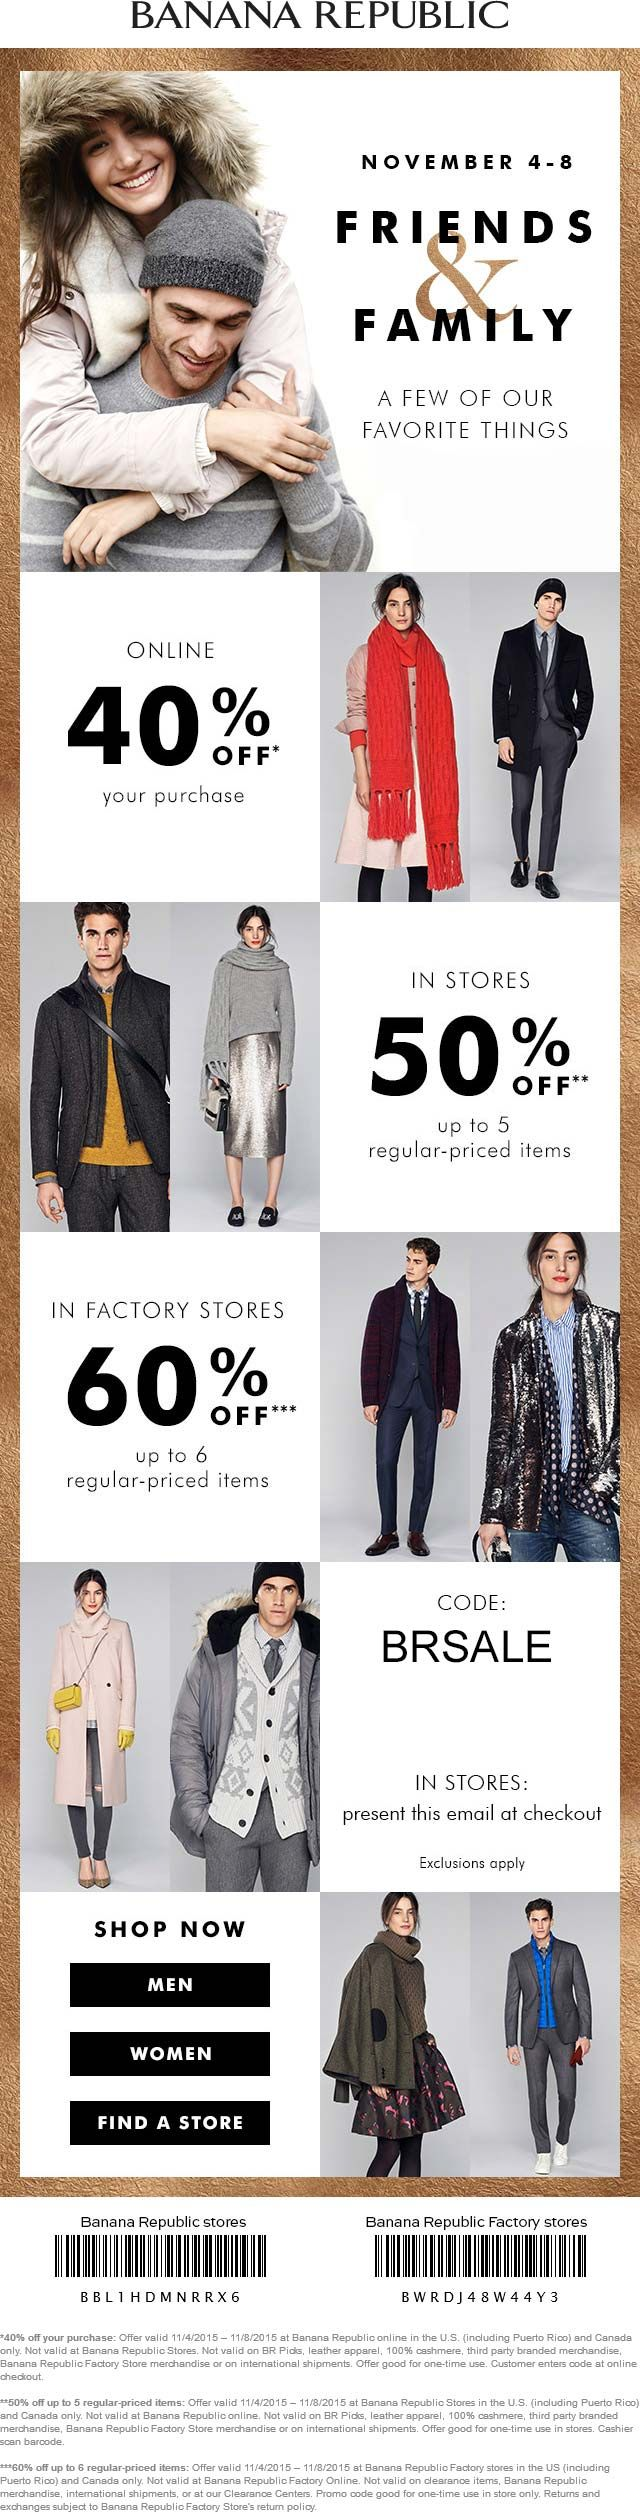 Banana republic coupon banana republic promo code from the coupons app extra off at banana republic factory locations or online via promo code brsale